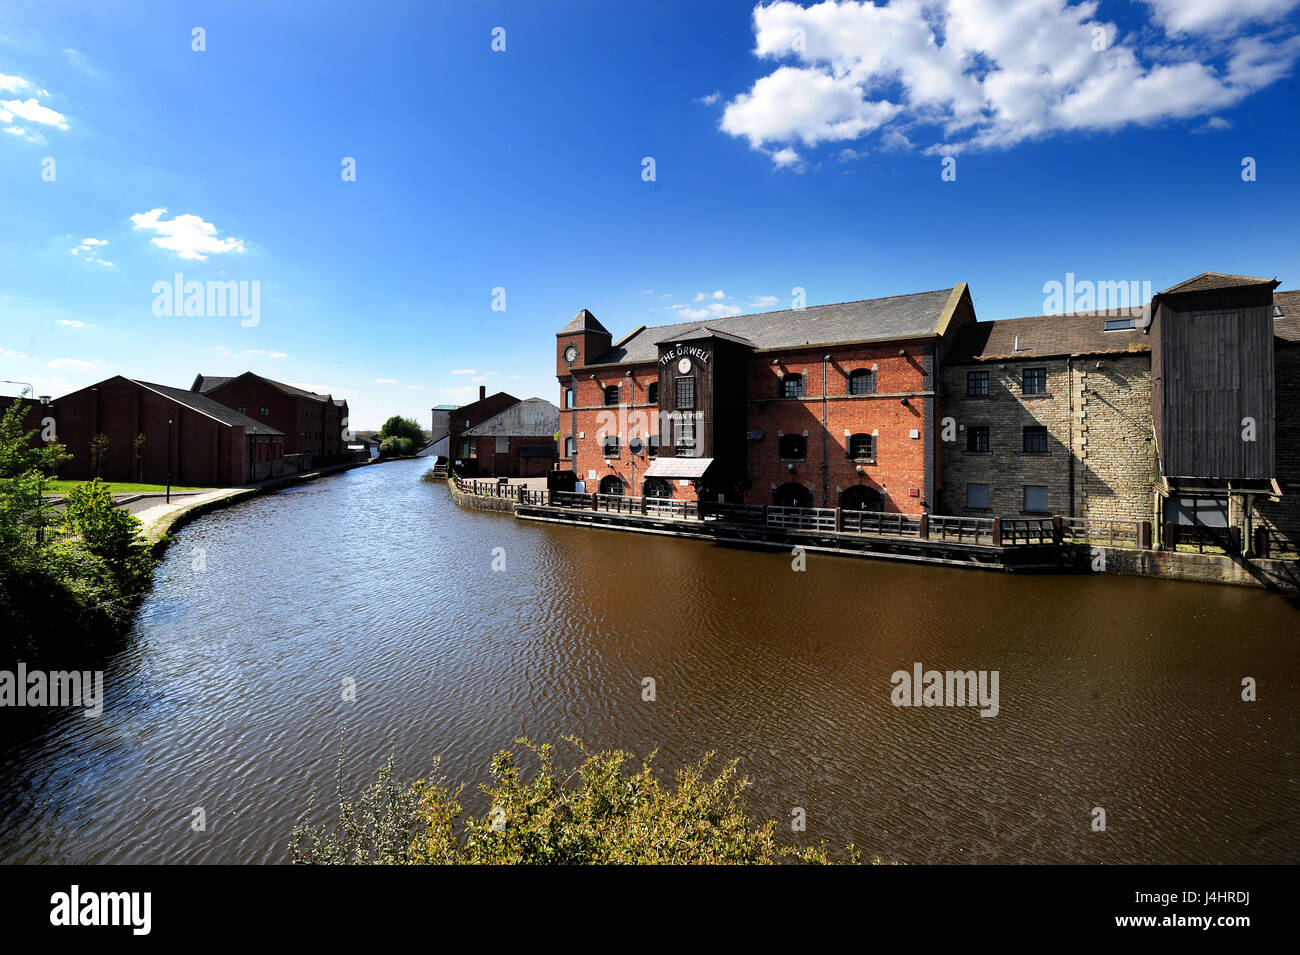 View of Wigan Pier on the Leeds and Liverpool Canal, Wigan. Picture by Paul Heyes, Friday May 05, 2017. - Stock Image